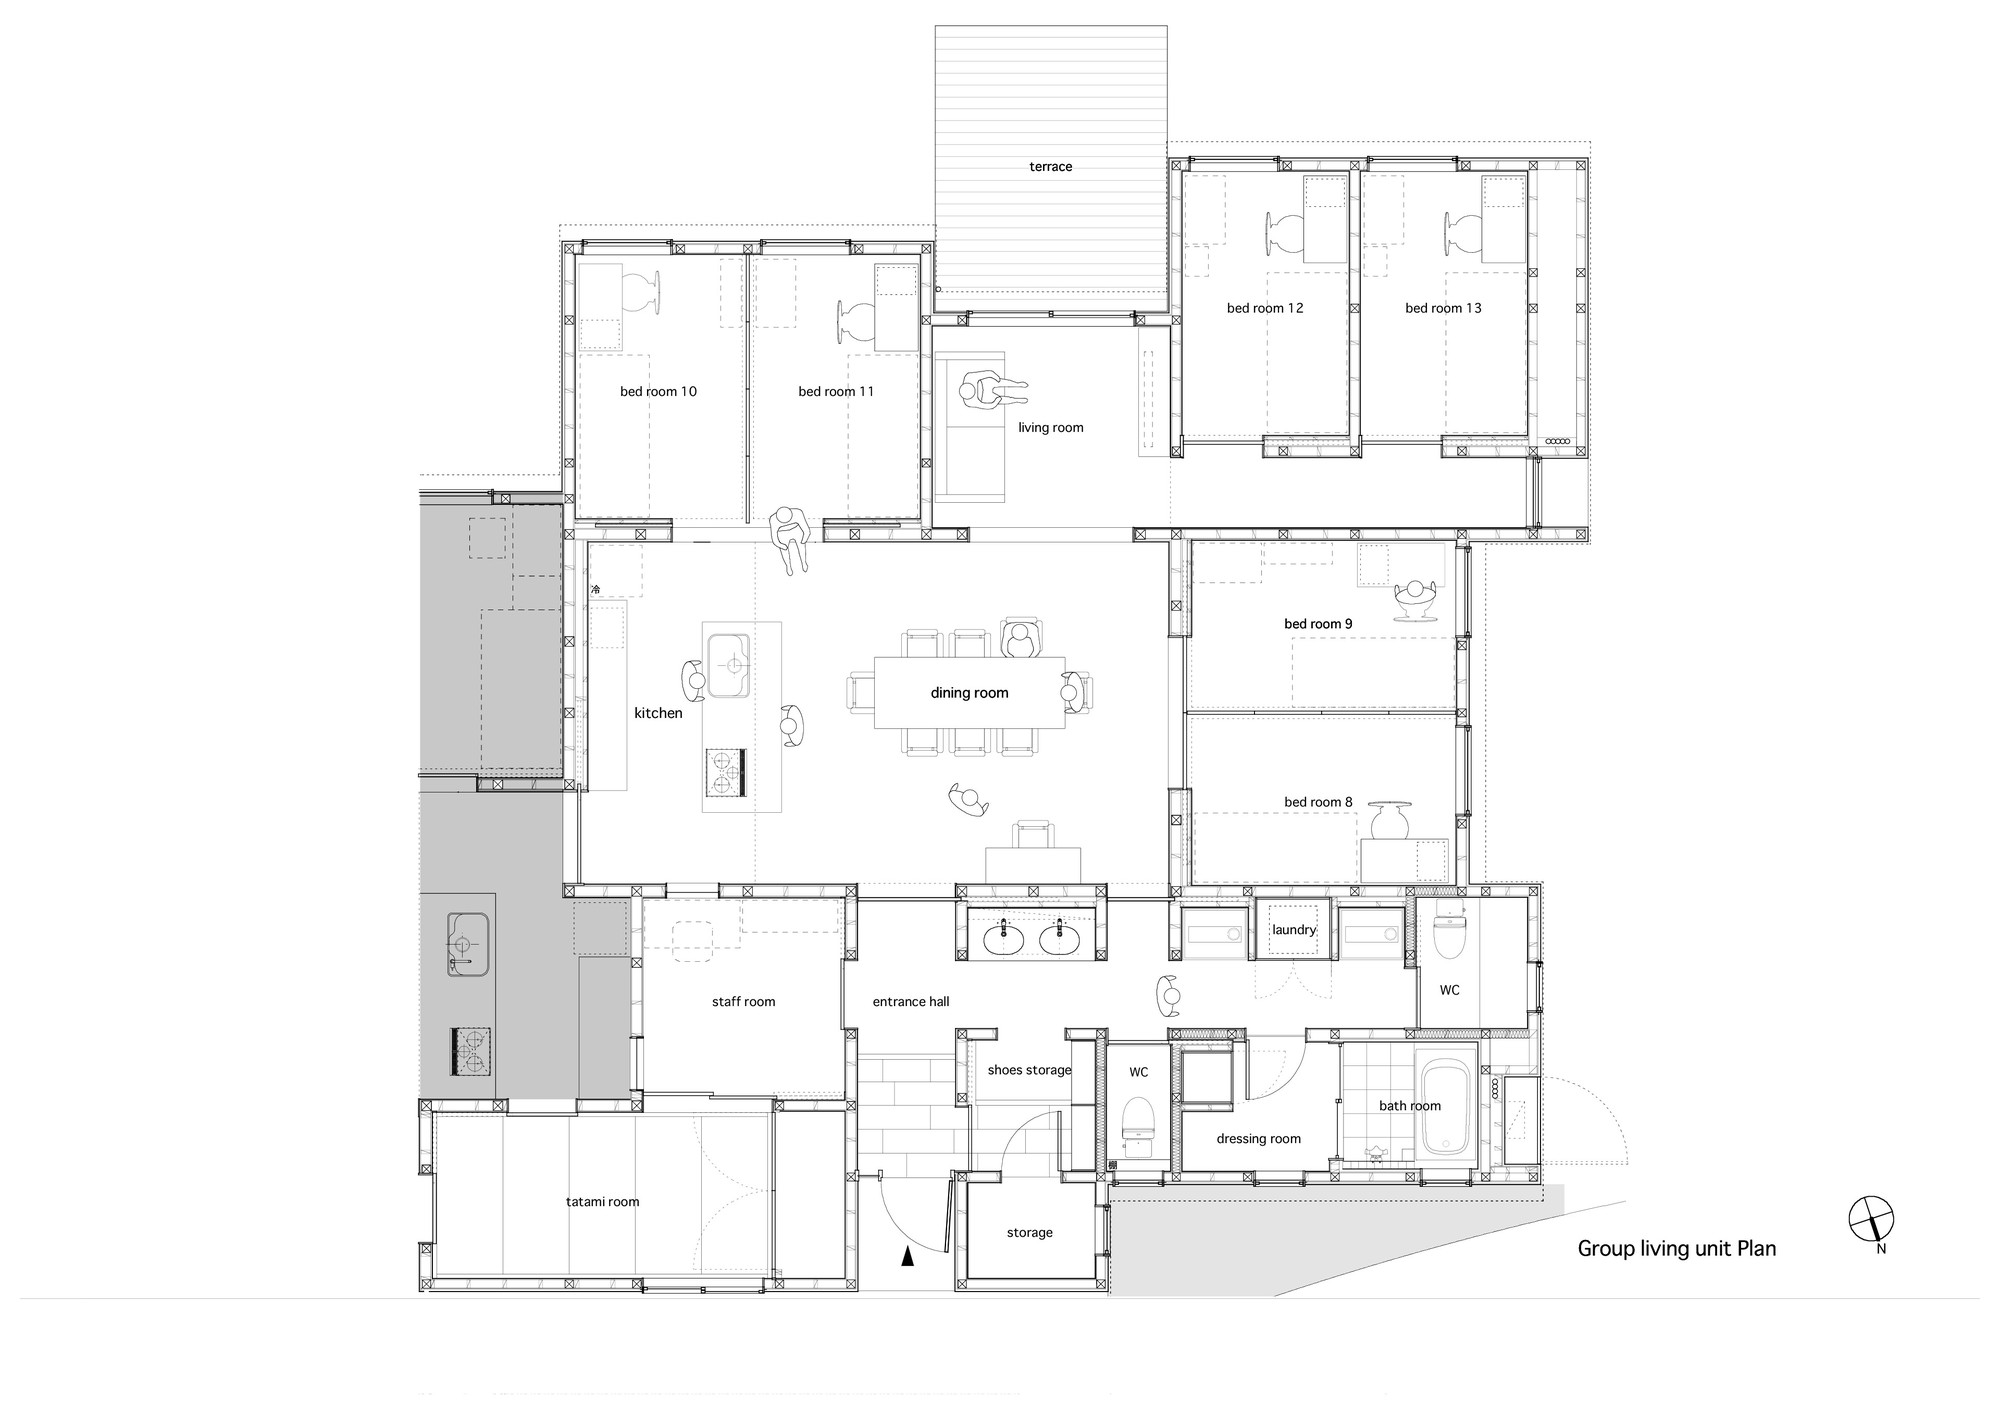 House Designs And Floor Plans Floor Plans For Group Homes Home Design And Style